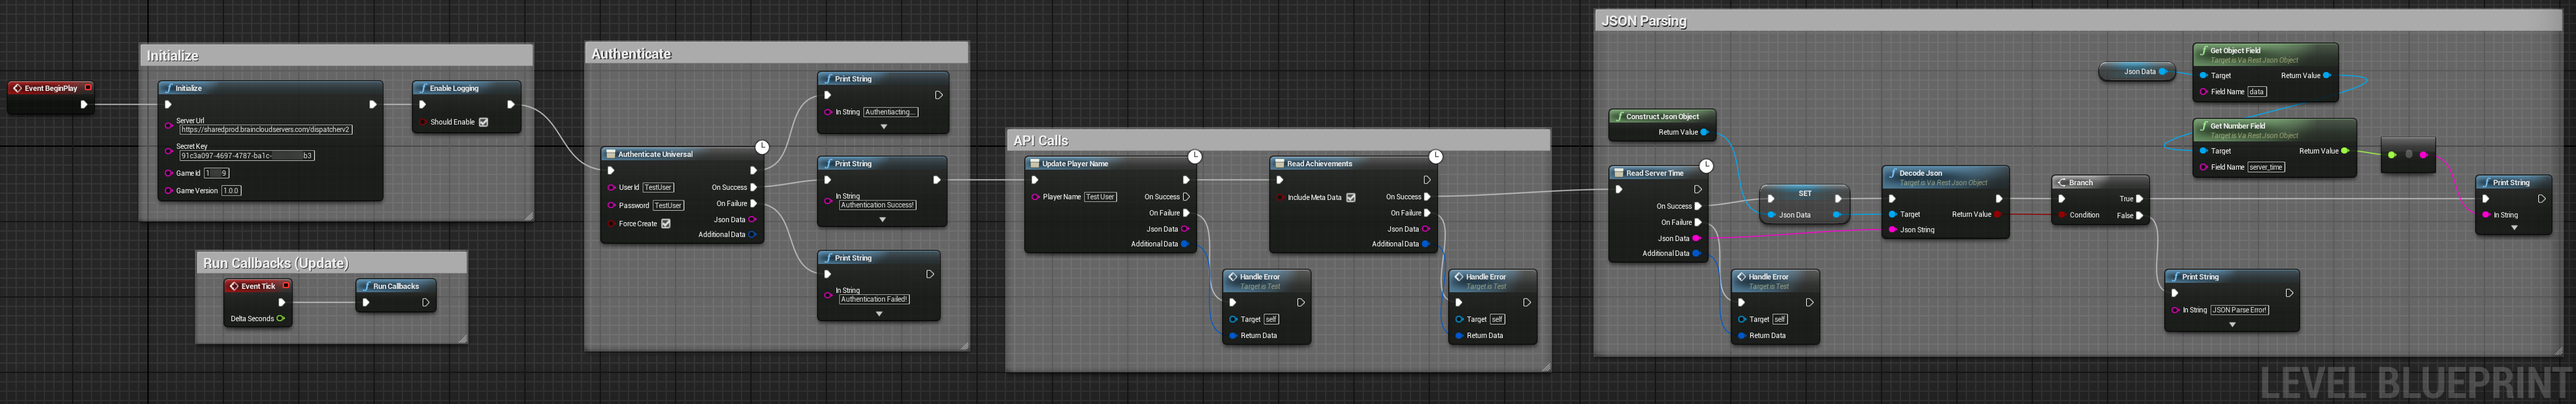 Getting started with blueprints braincloud api docs unrealfull malvernweather Images